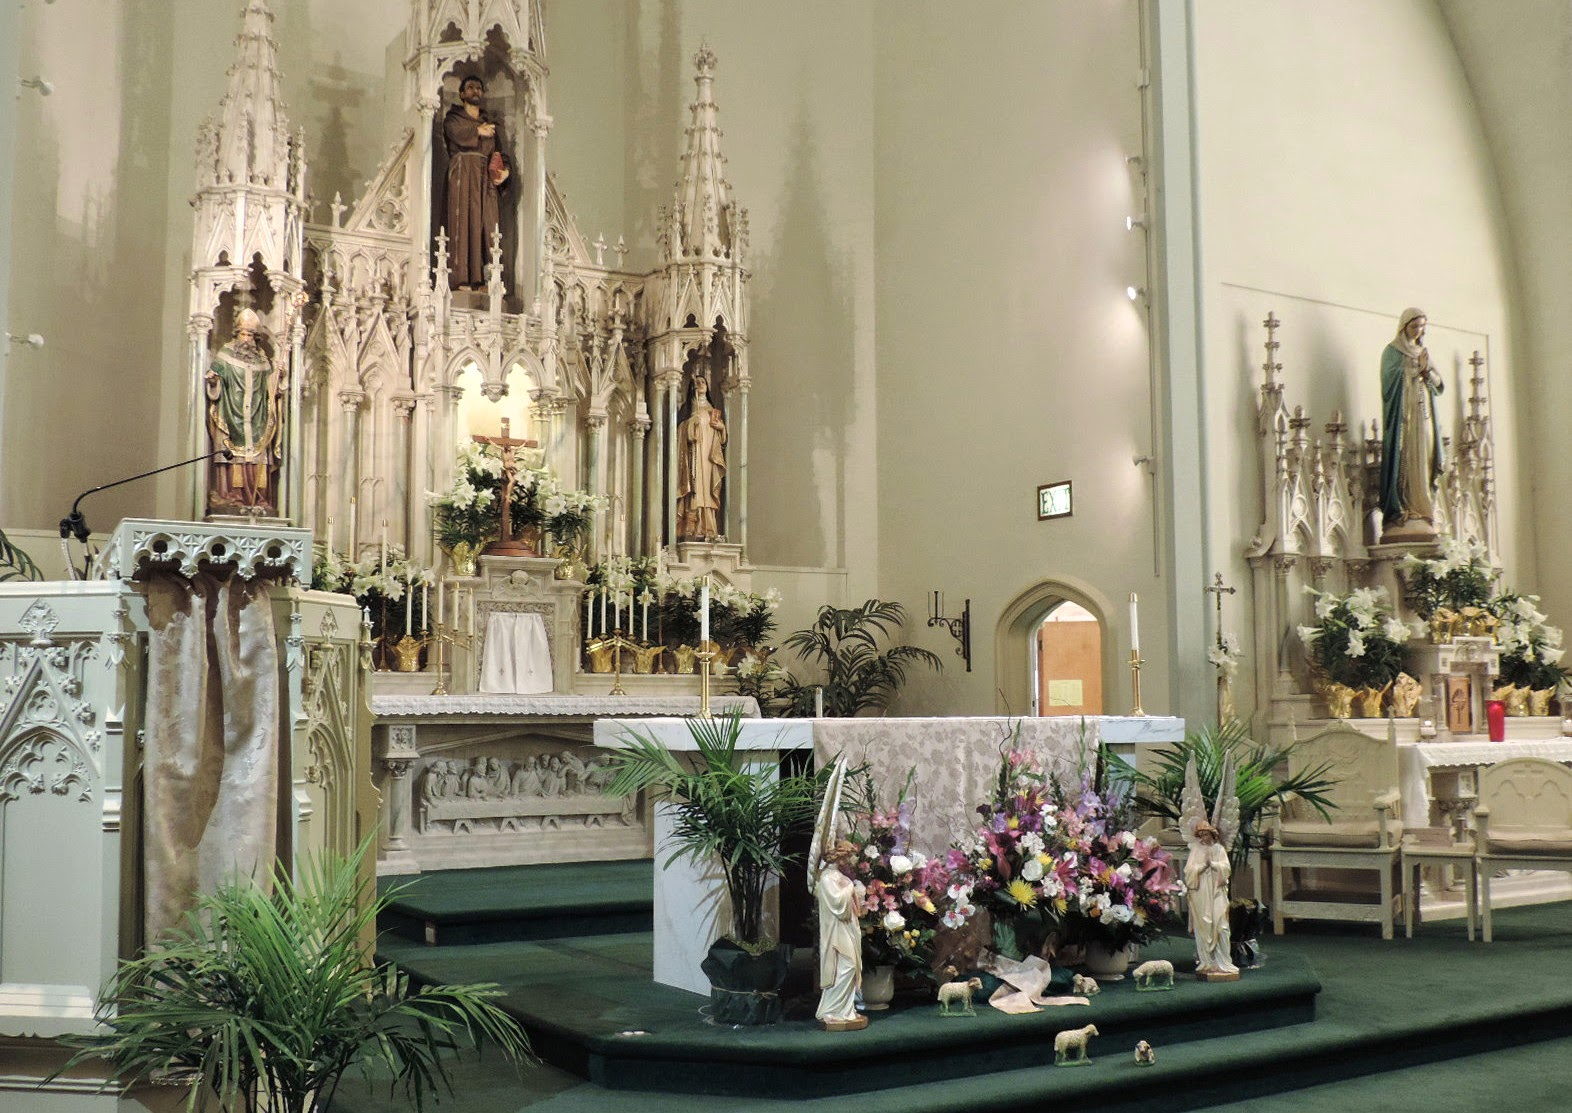 Father Julian's Blog: Easter decorations and celebrations